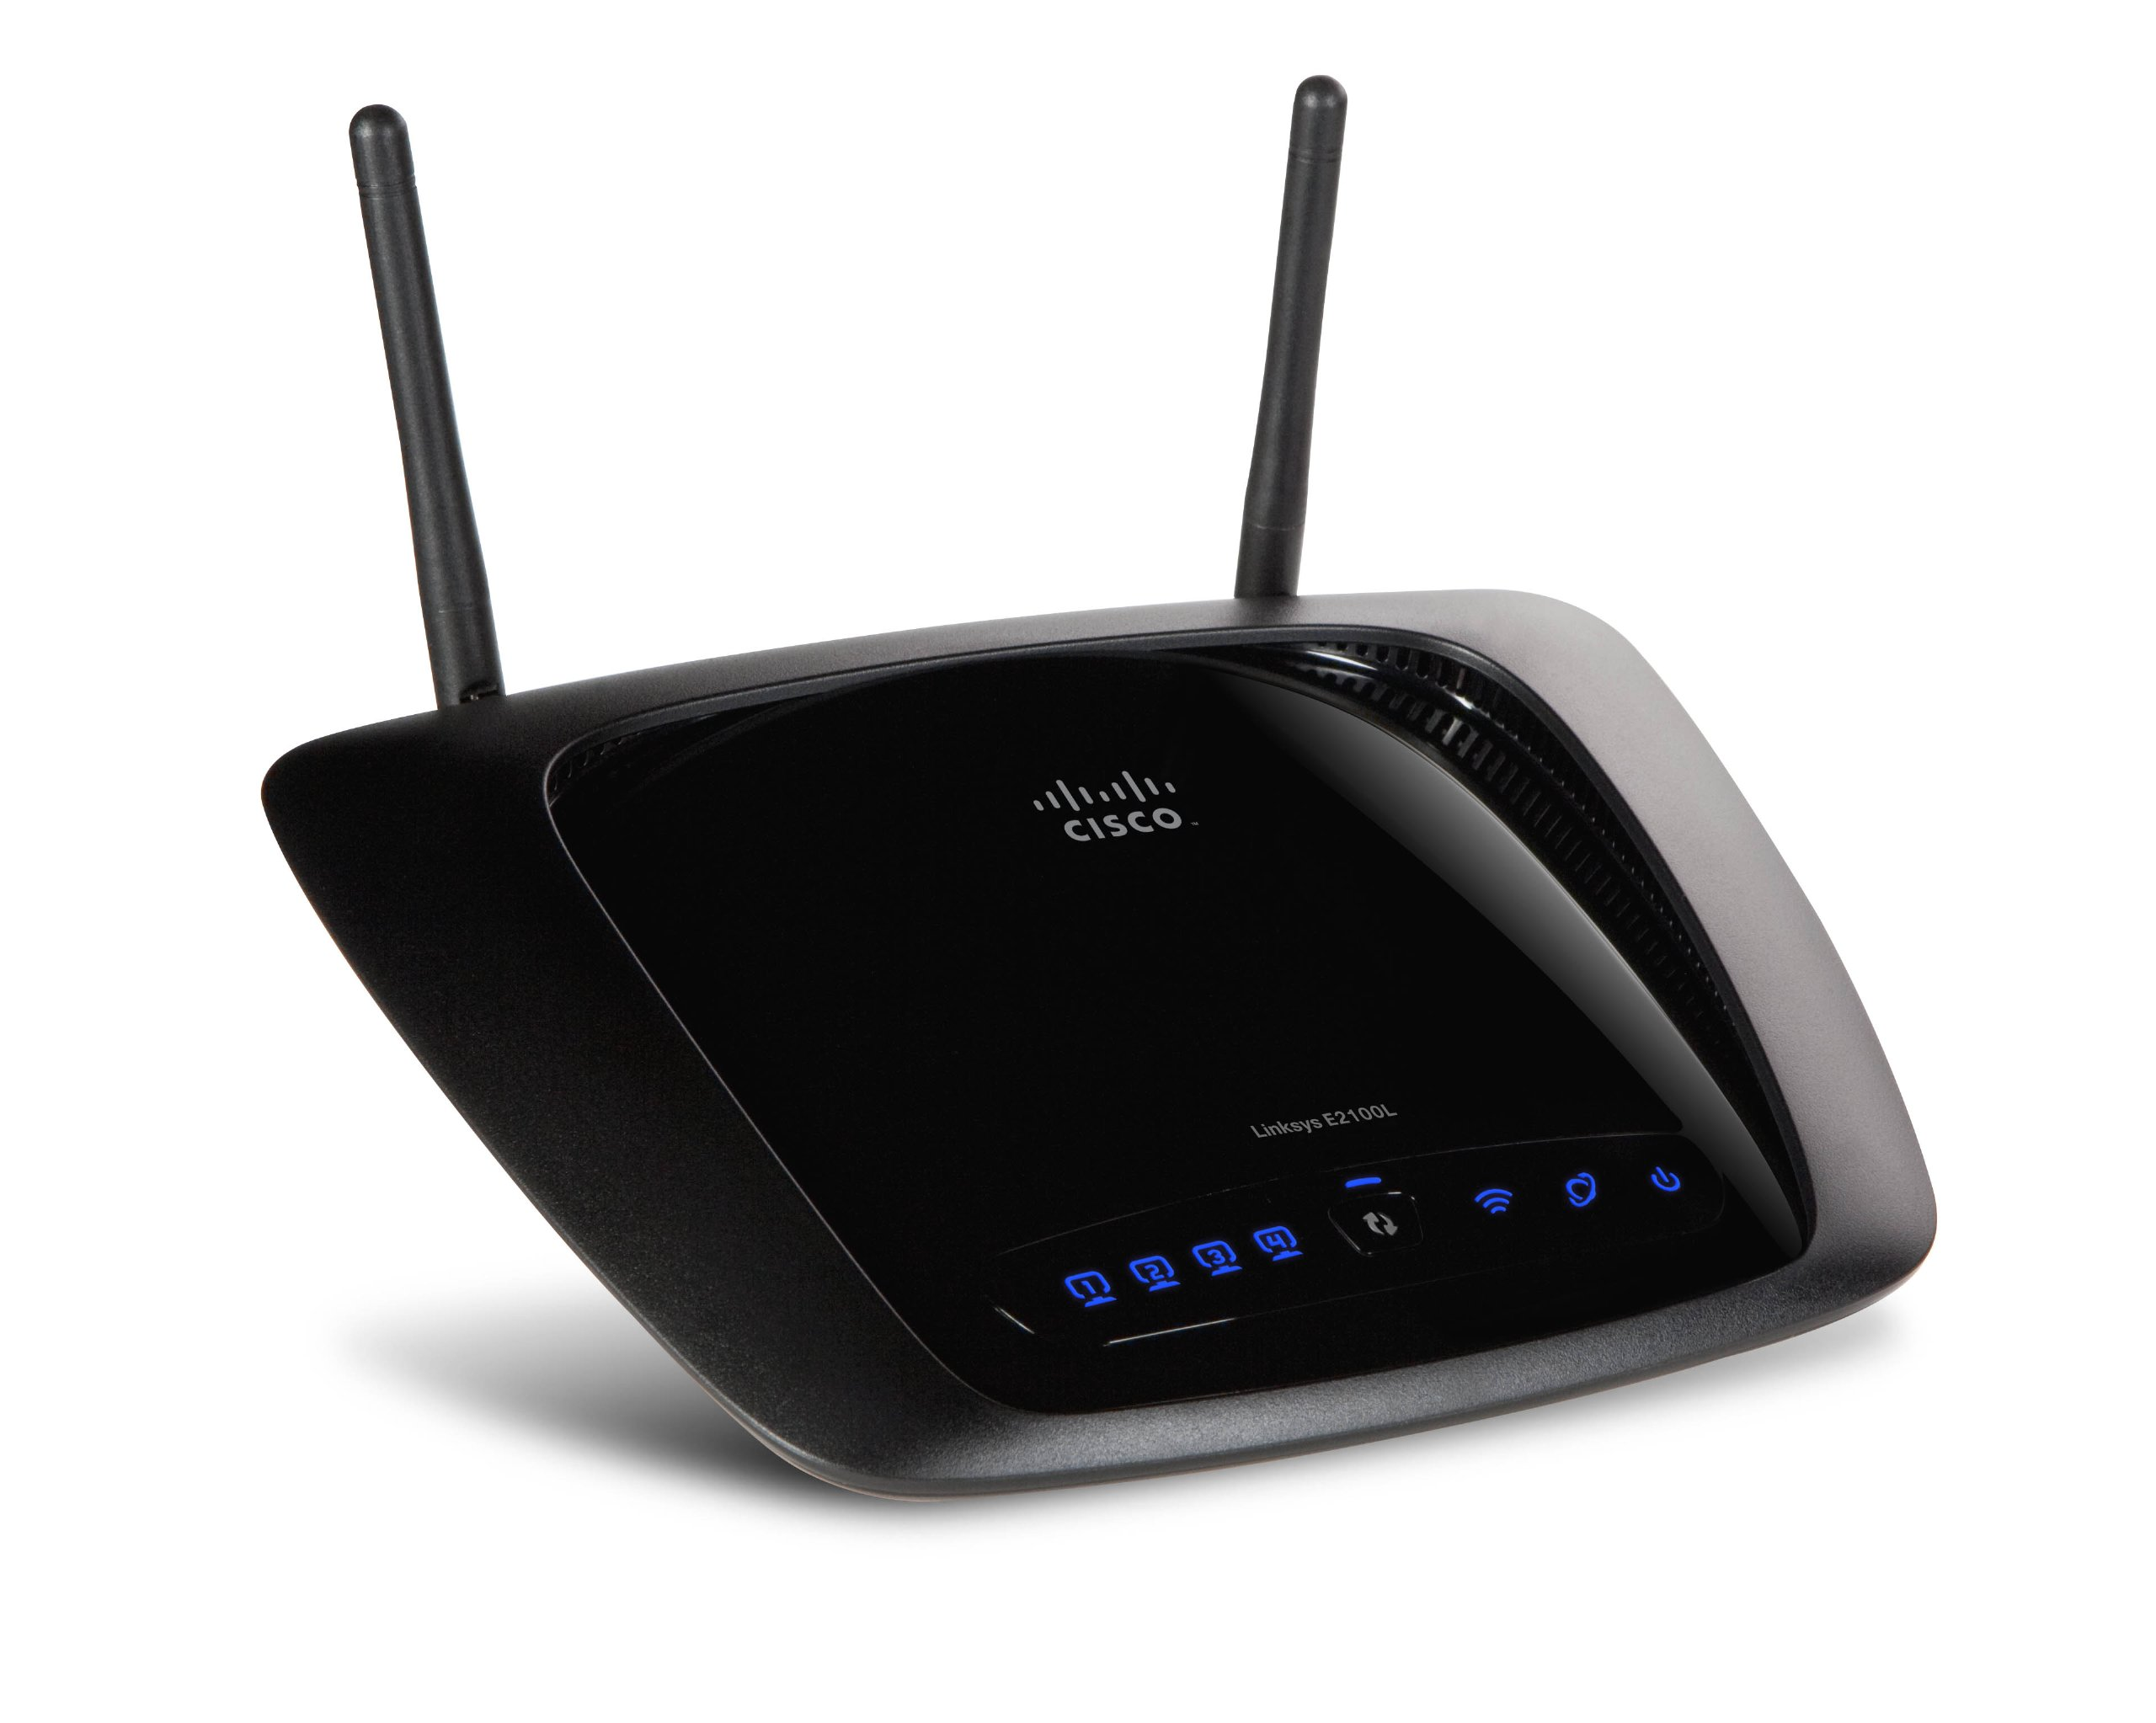 Cisco-Linksys E2100L Advanced Wireless-N Router by Linksys